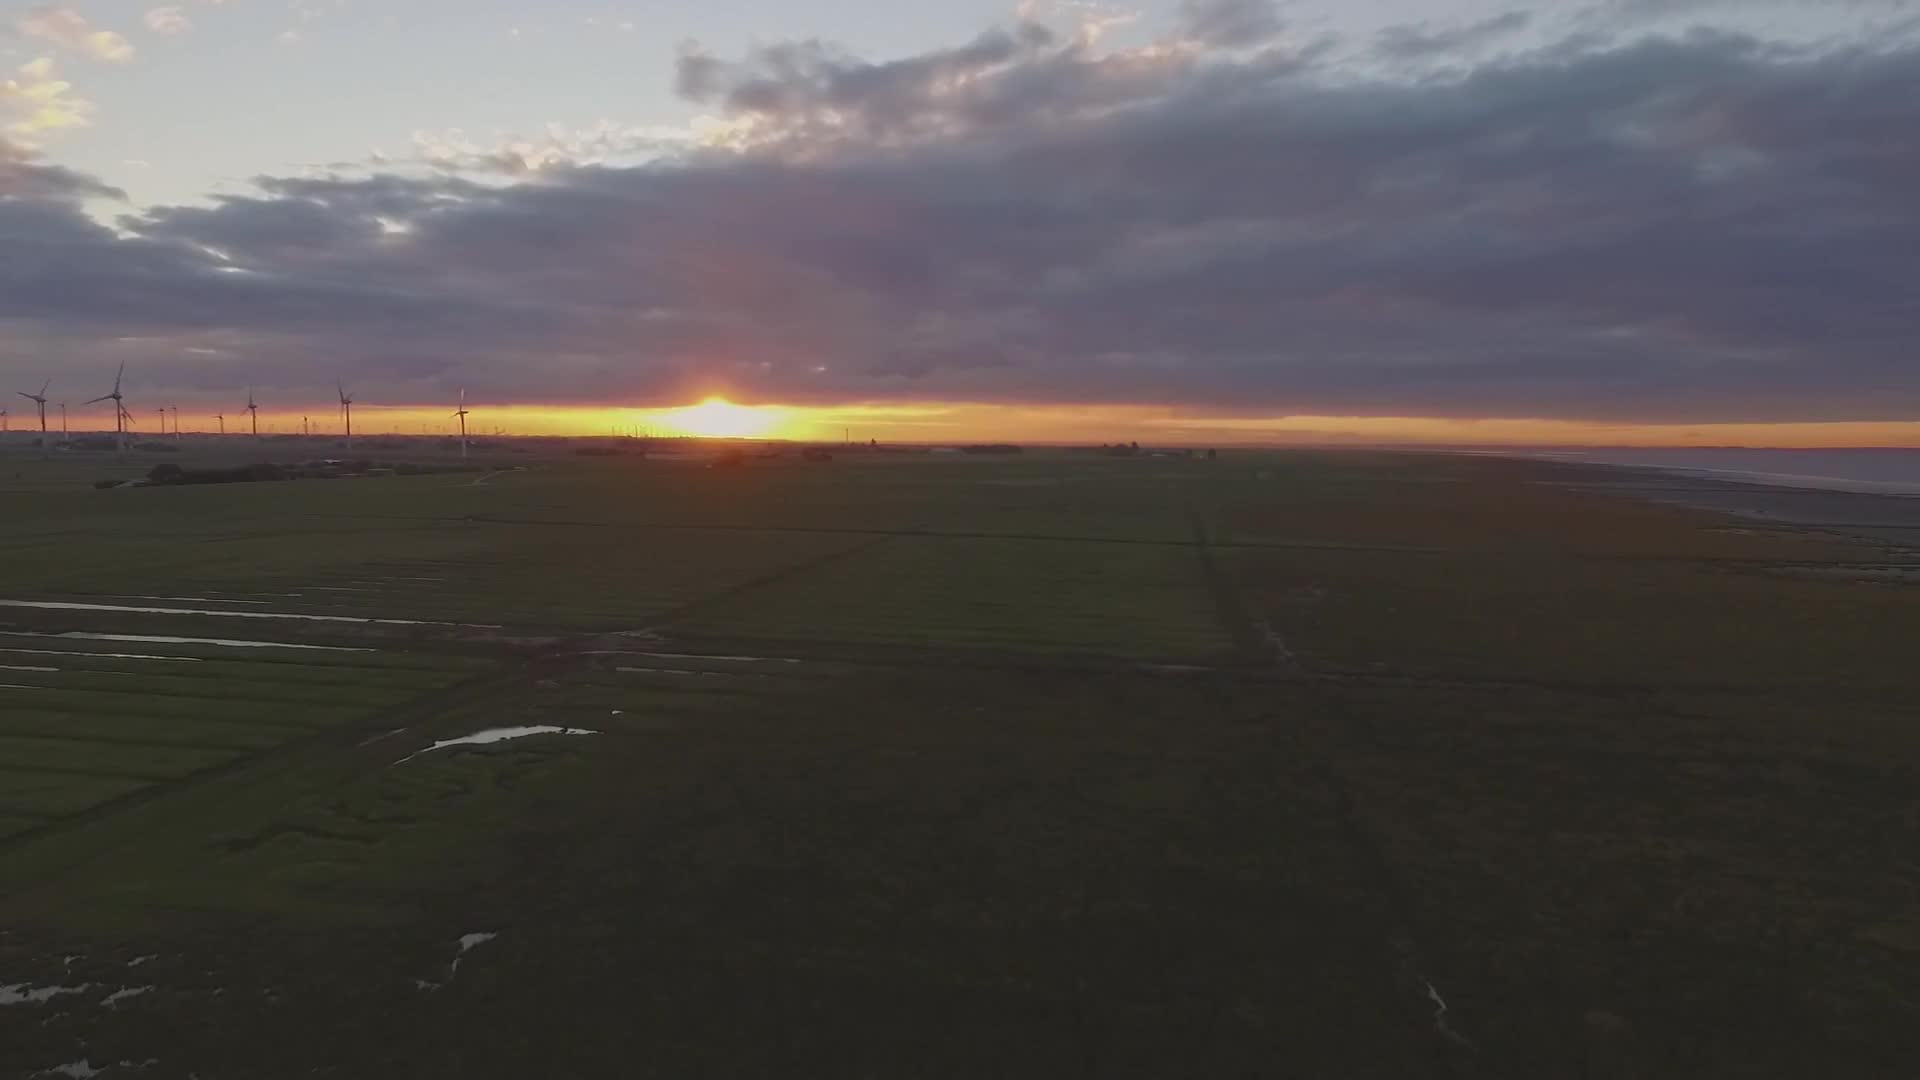 Sunrise drone video